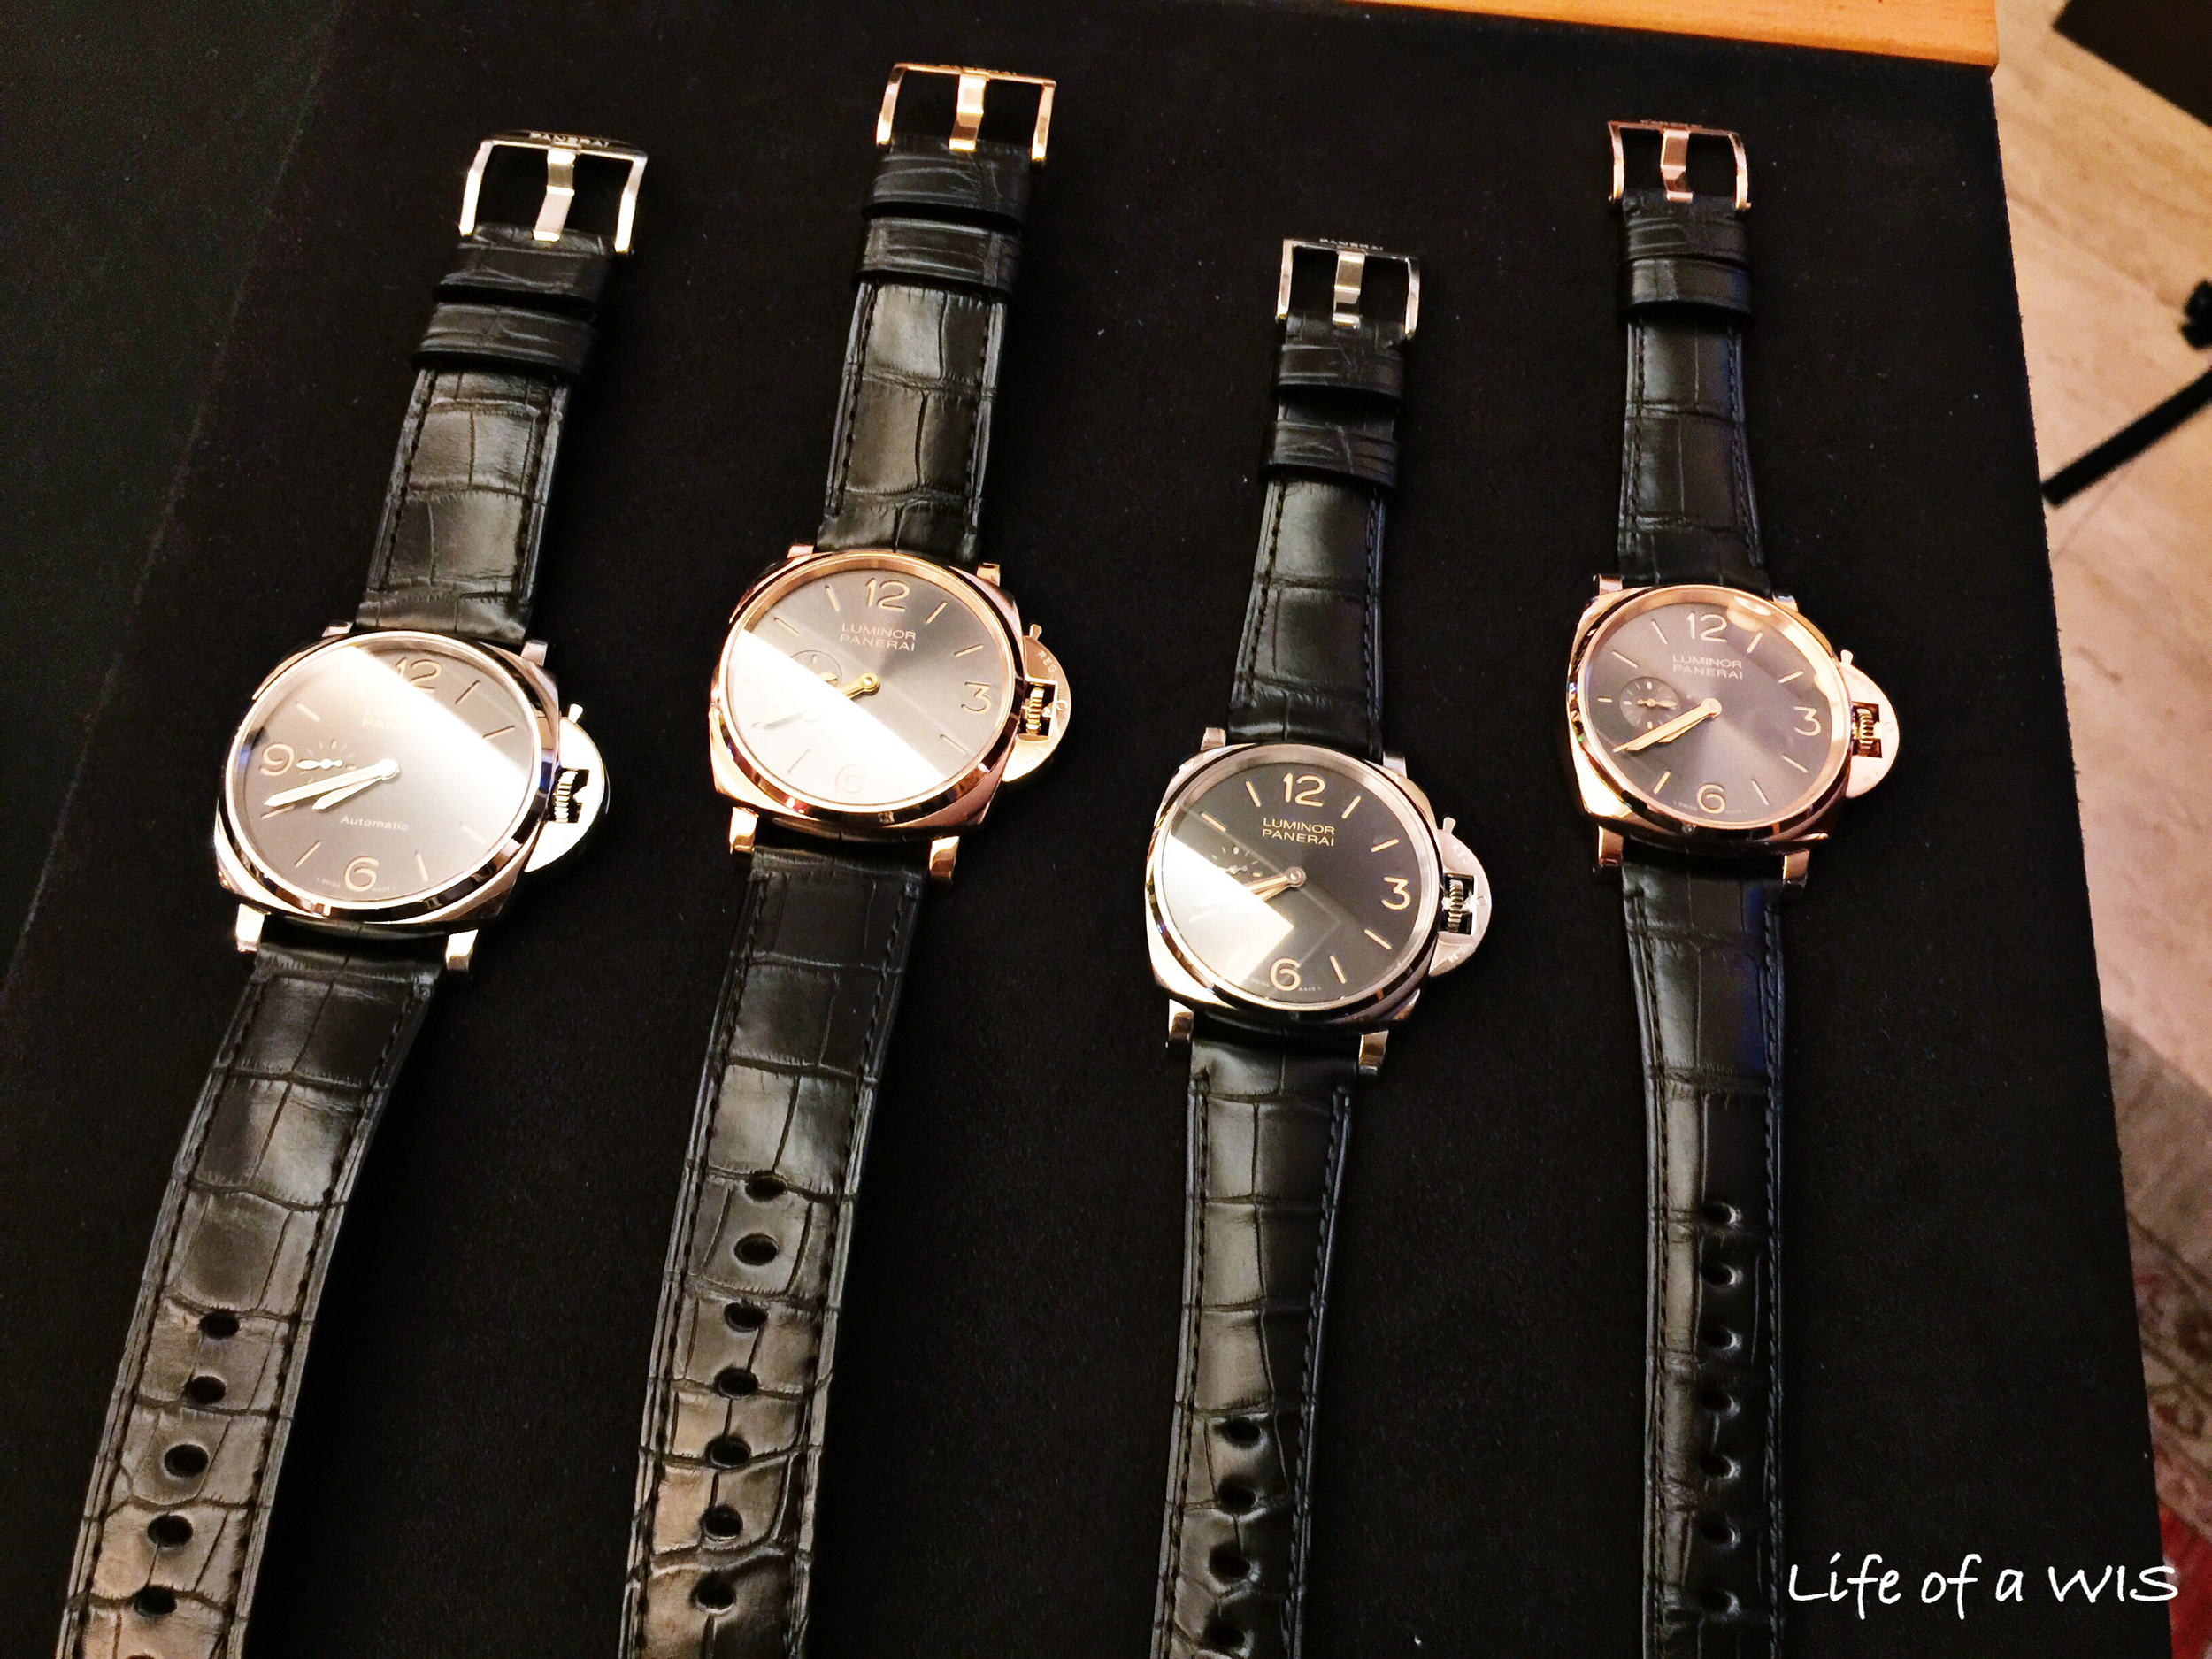 Luminor Due collection